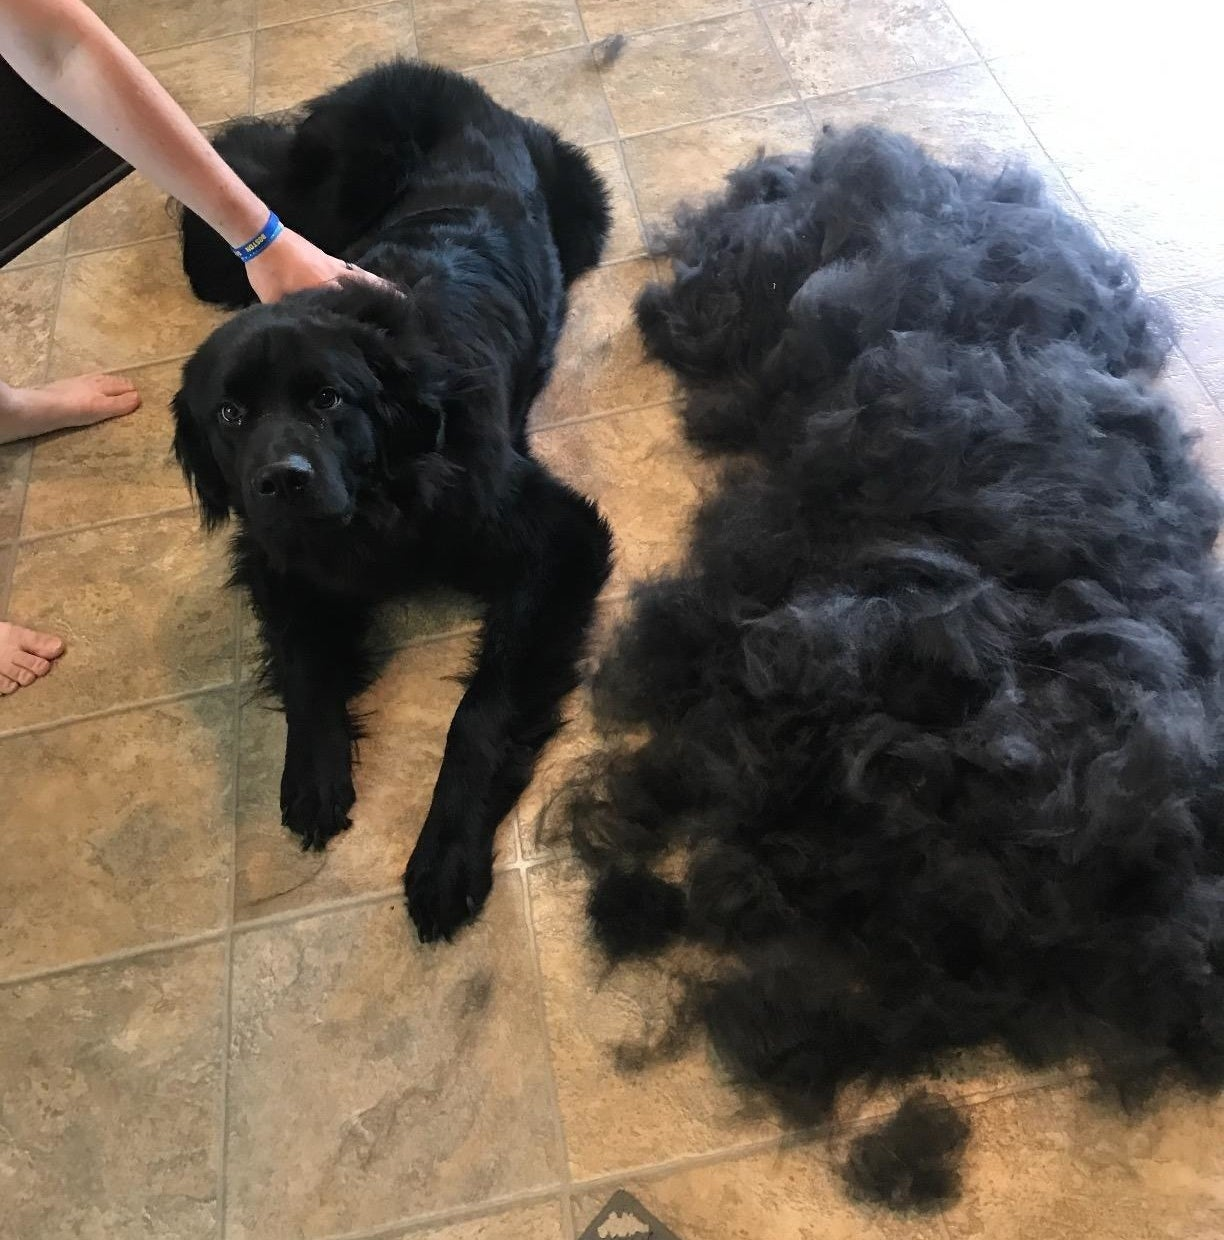 Reviewer's photo of their dog and a pile of discarded fur